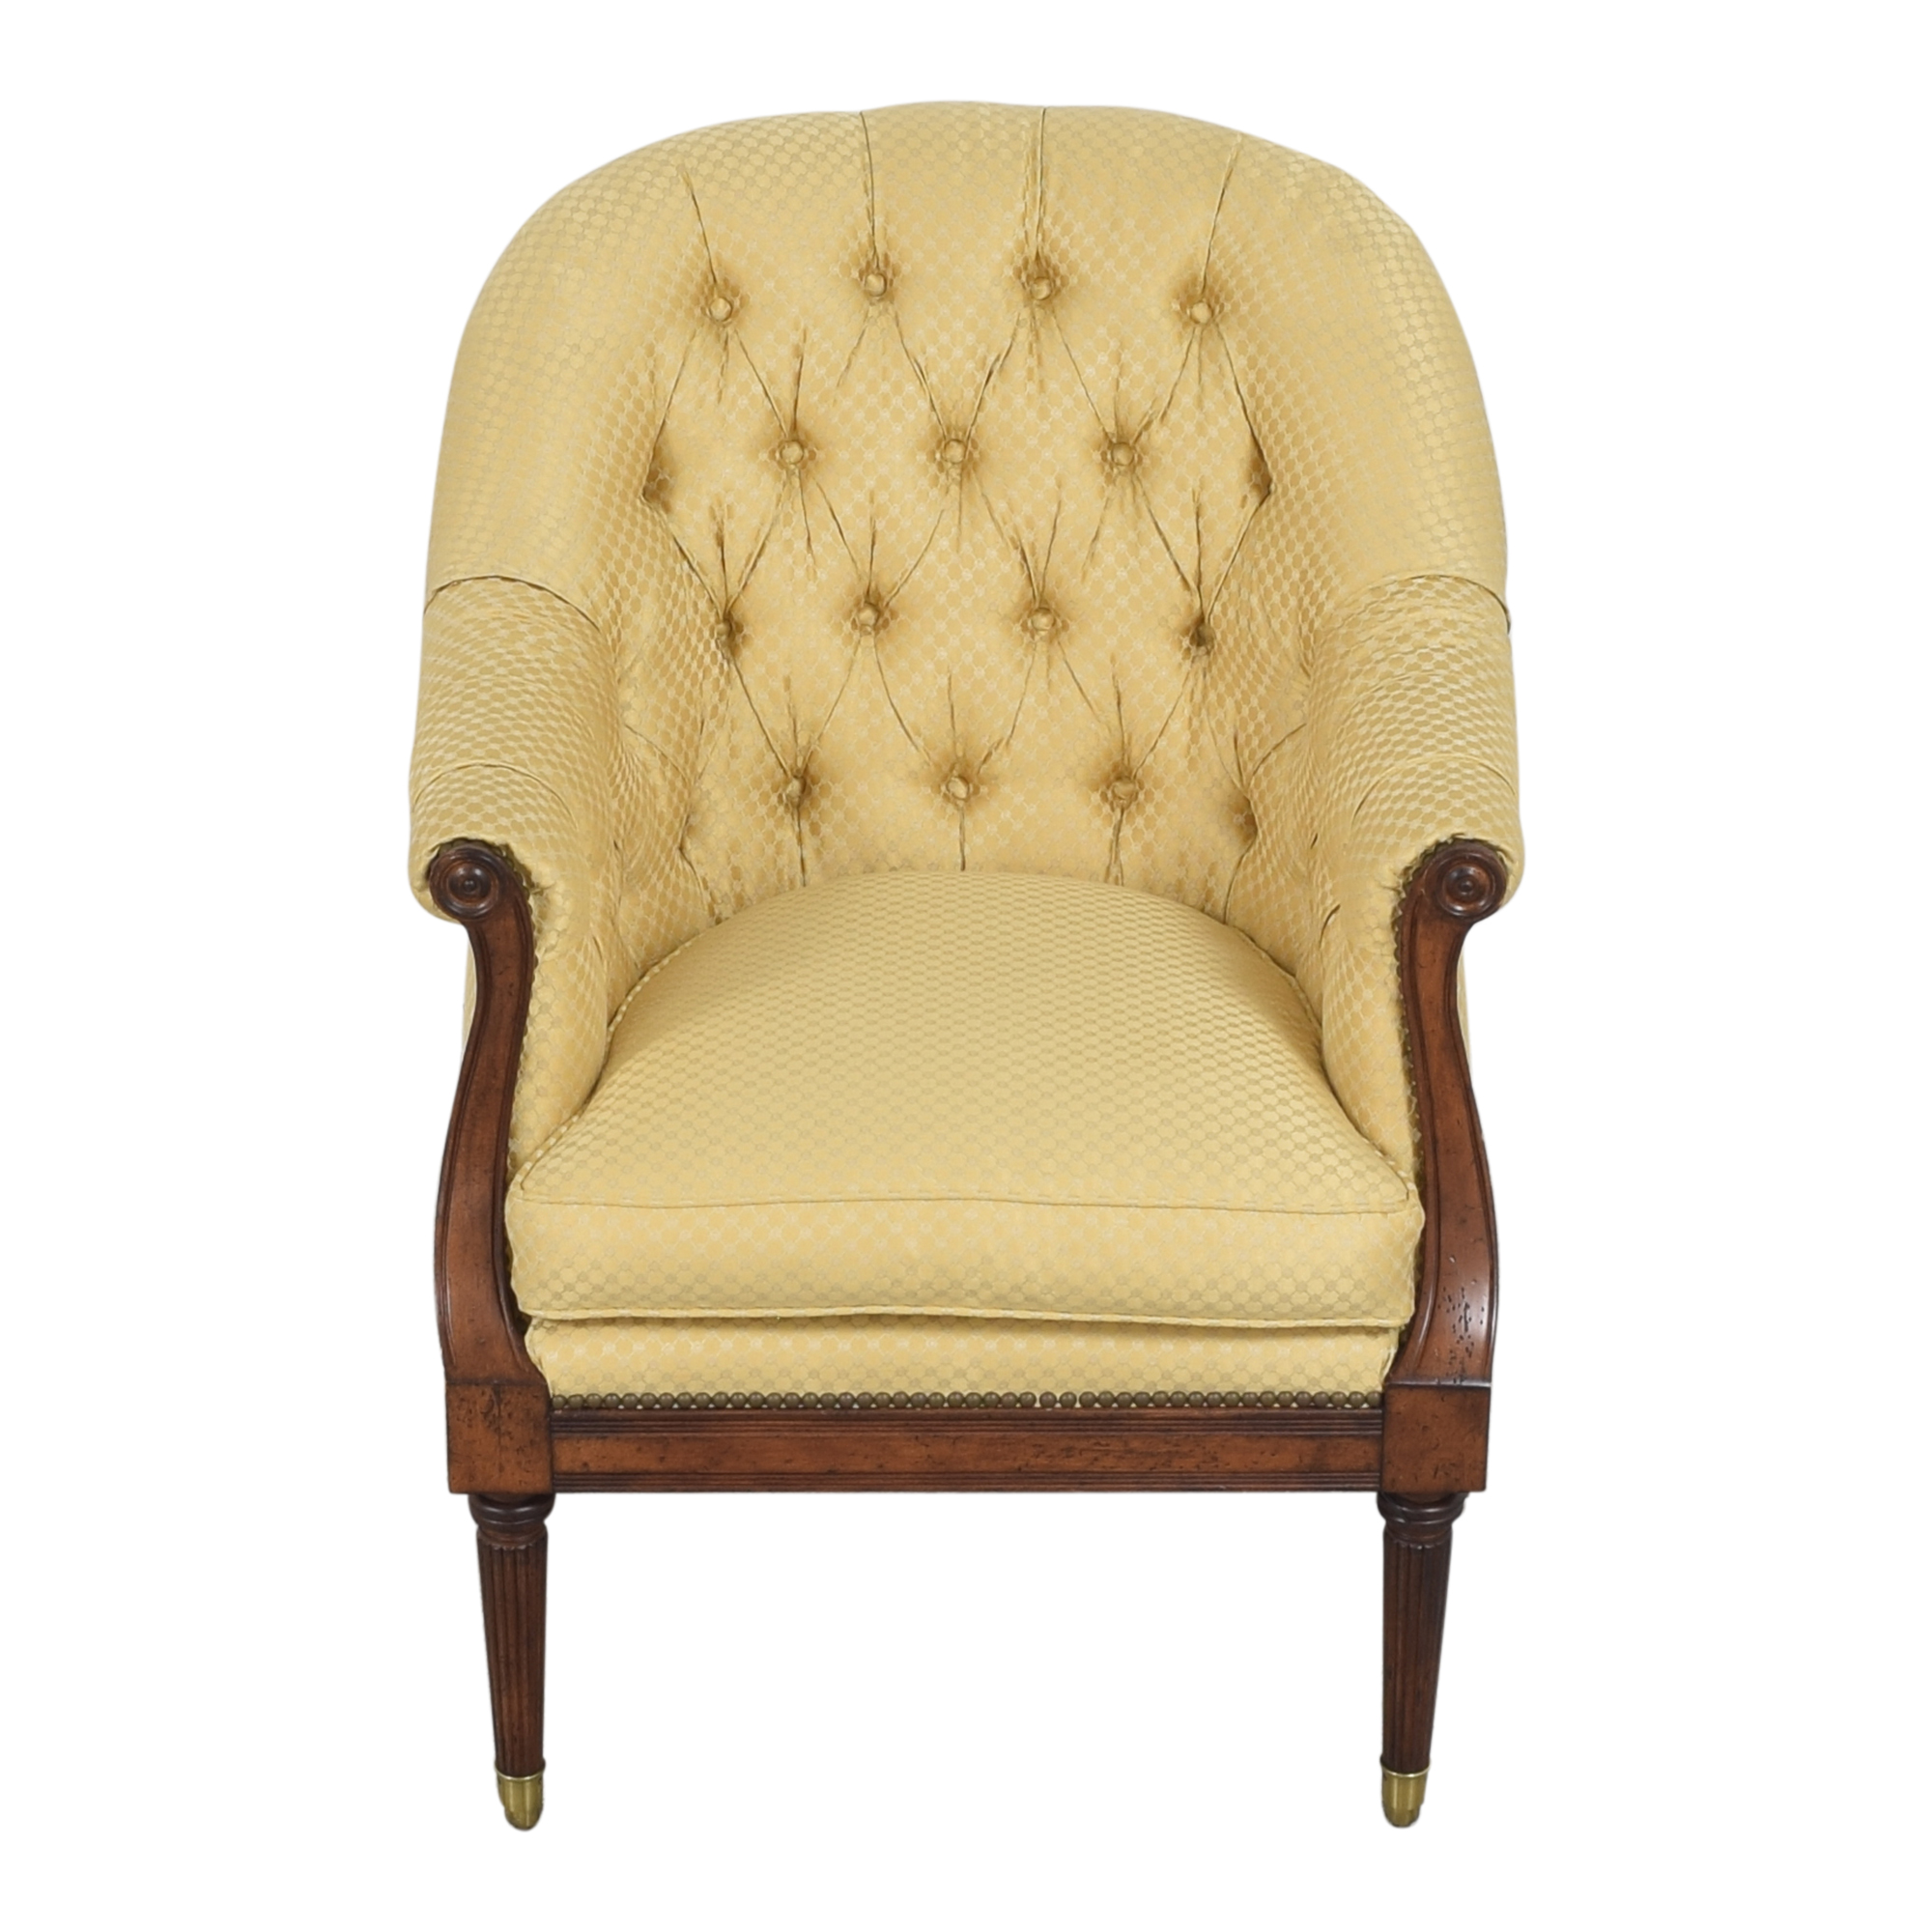 buy Lillian August Tufted Armchair Lillian August Accent Chairs